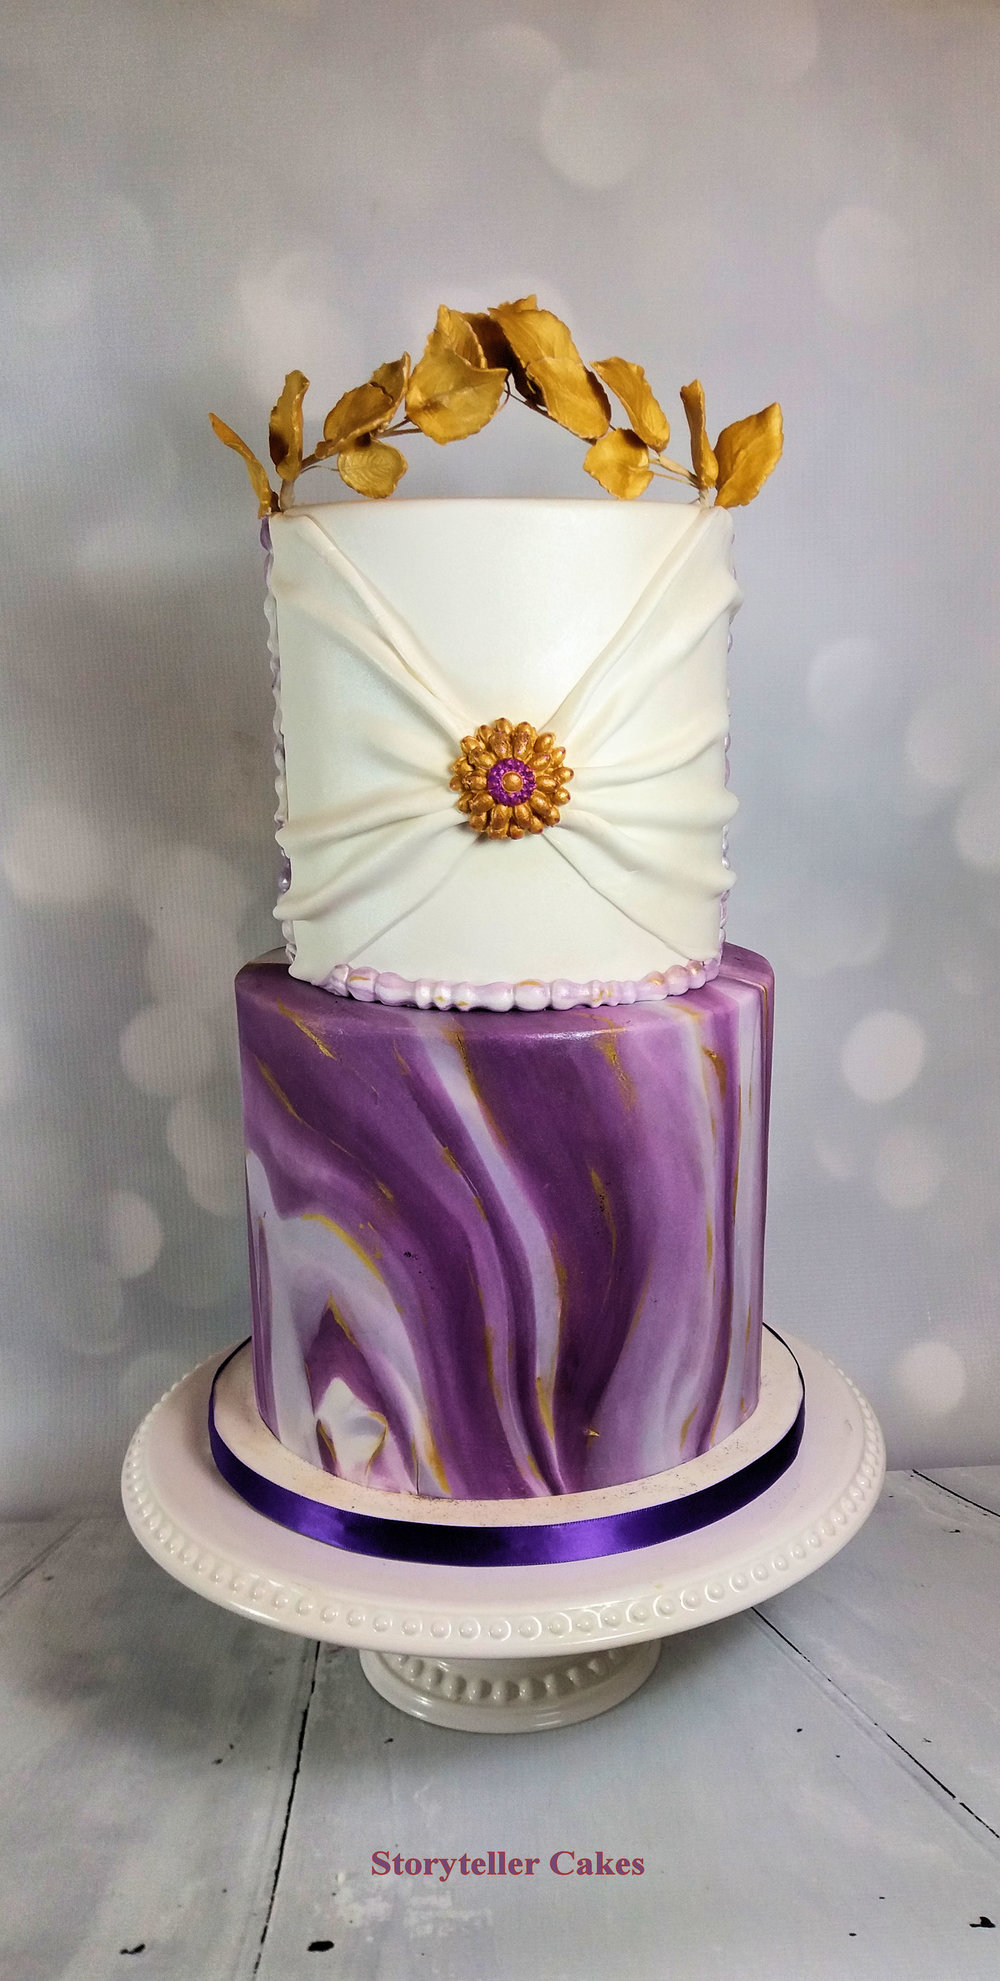 Purple and gold marble grecian cake 2.jpg